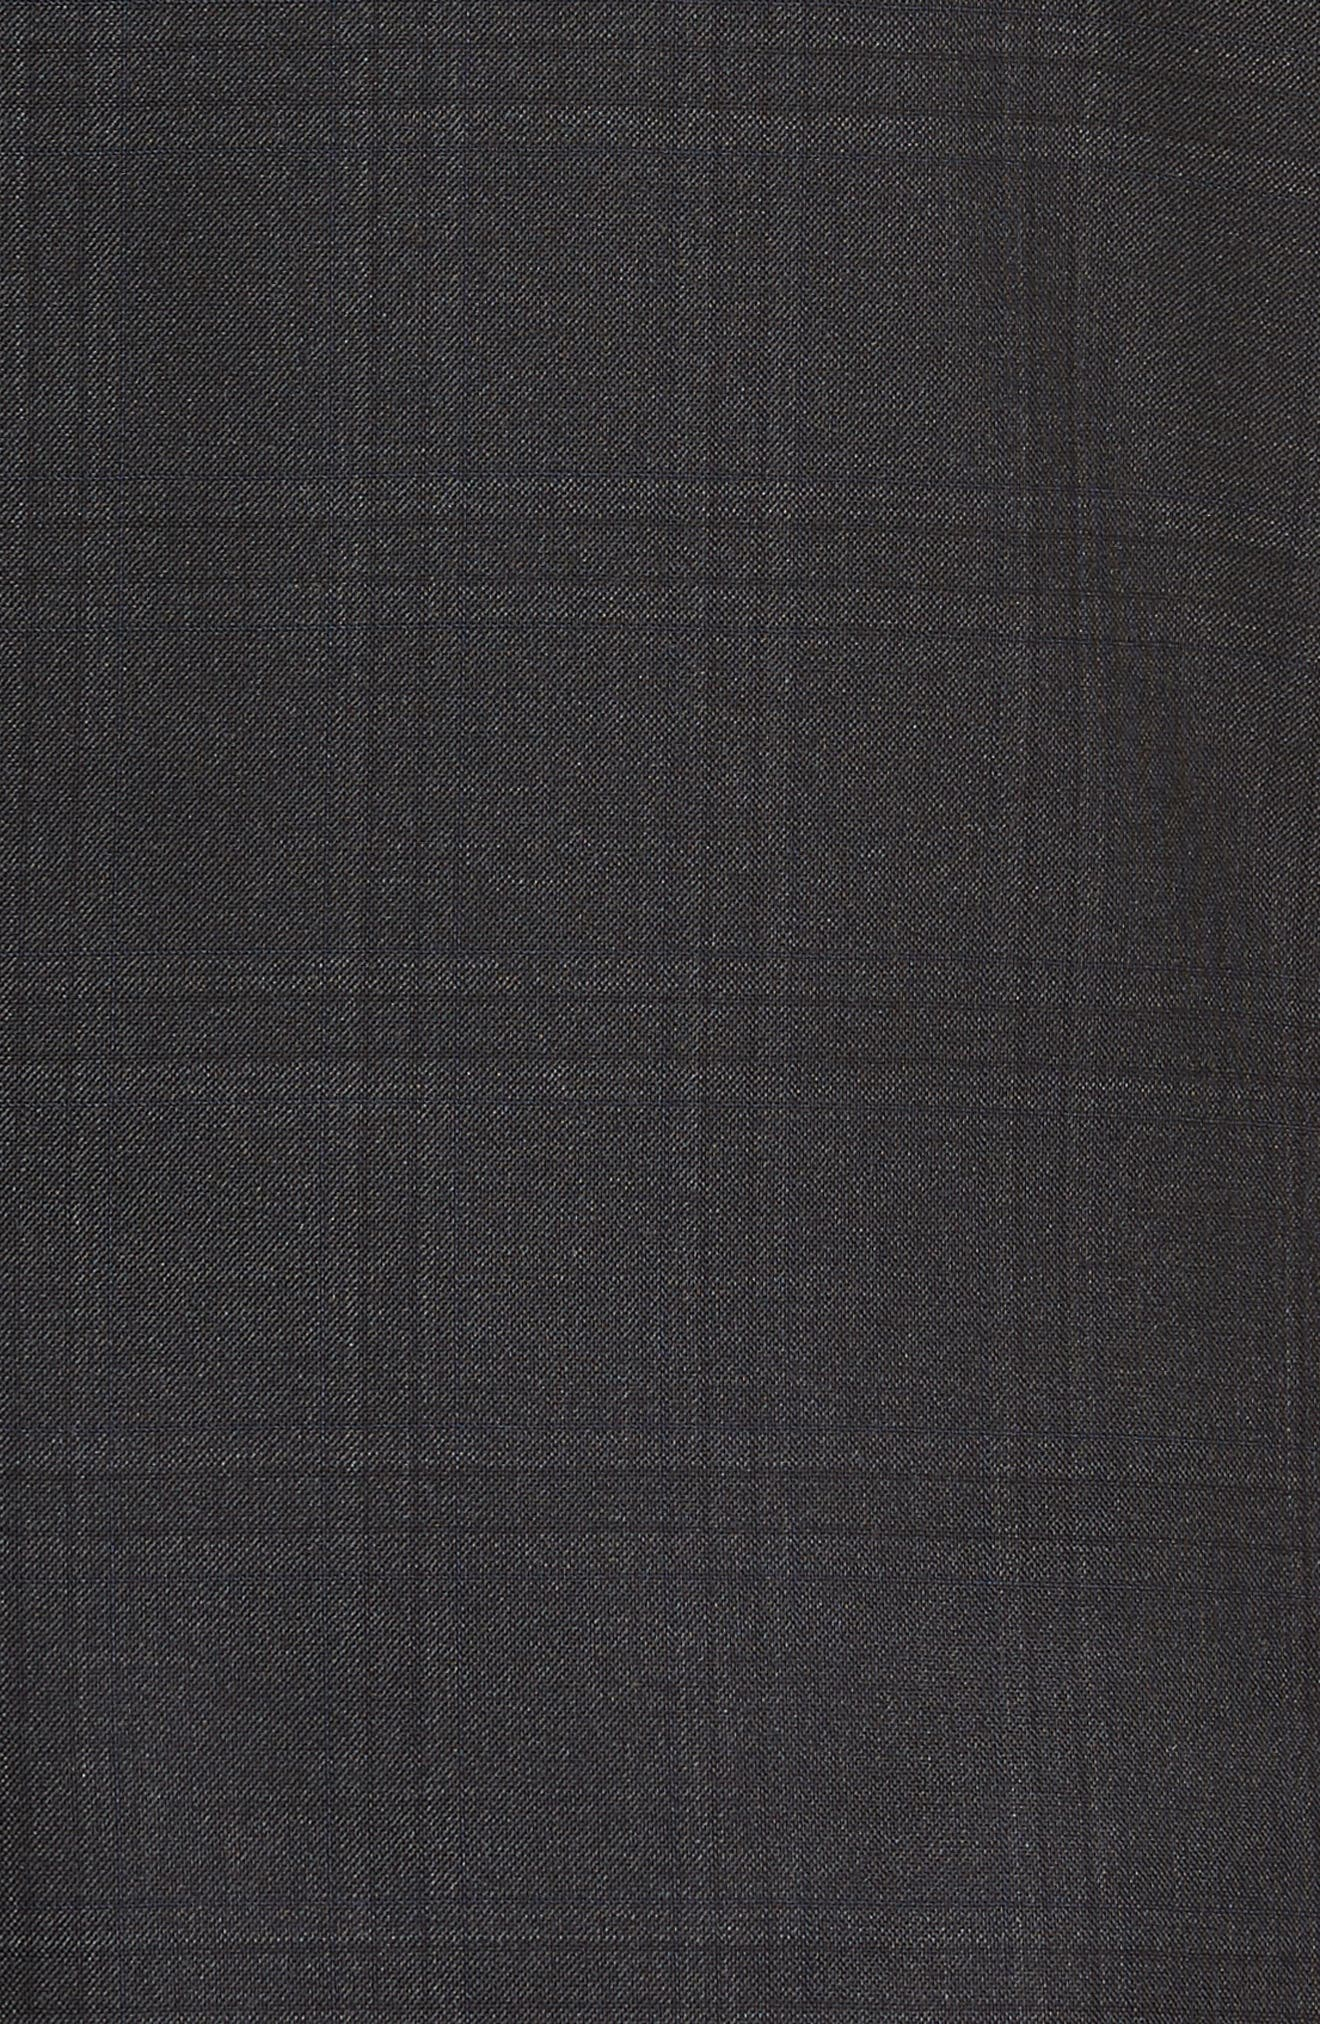 Jay Trim Fit Plaid Wool Suit,                             Alternate thumbnail 8, color,                             Charcoal